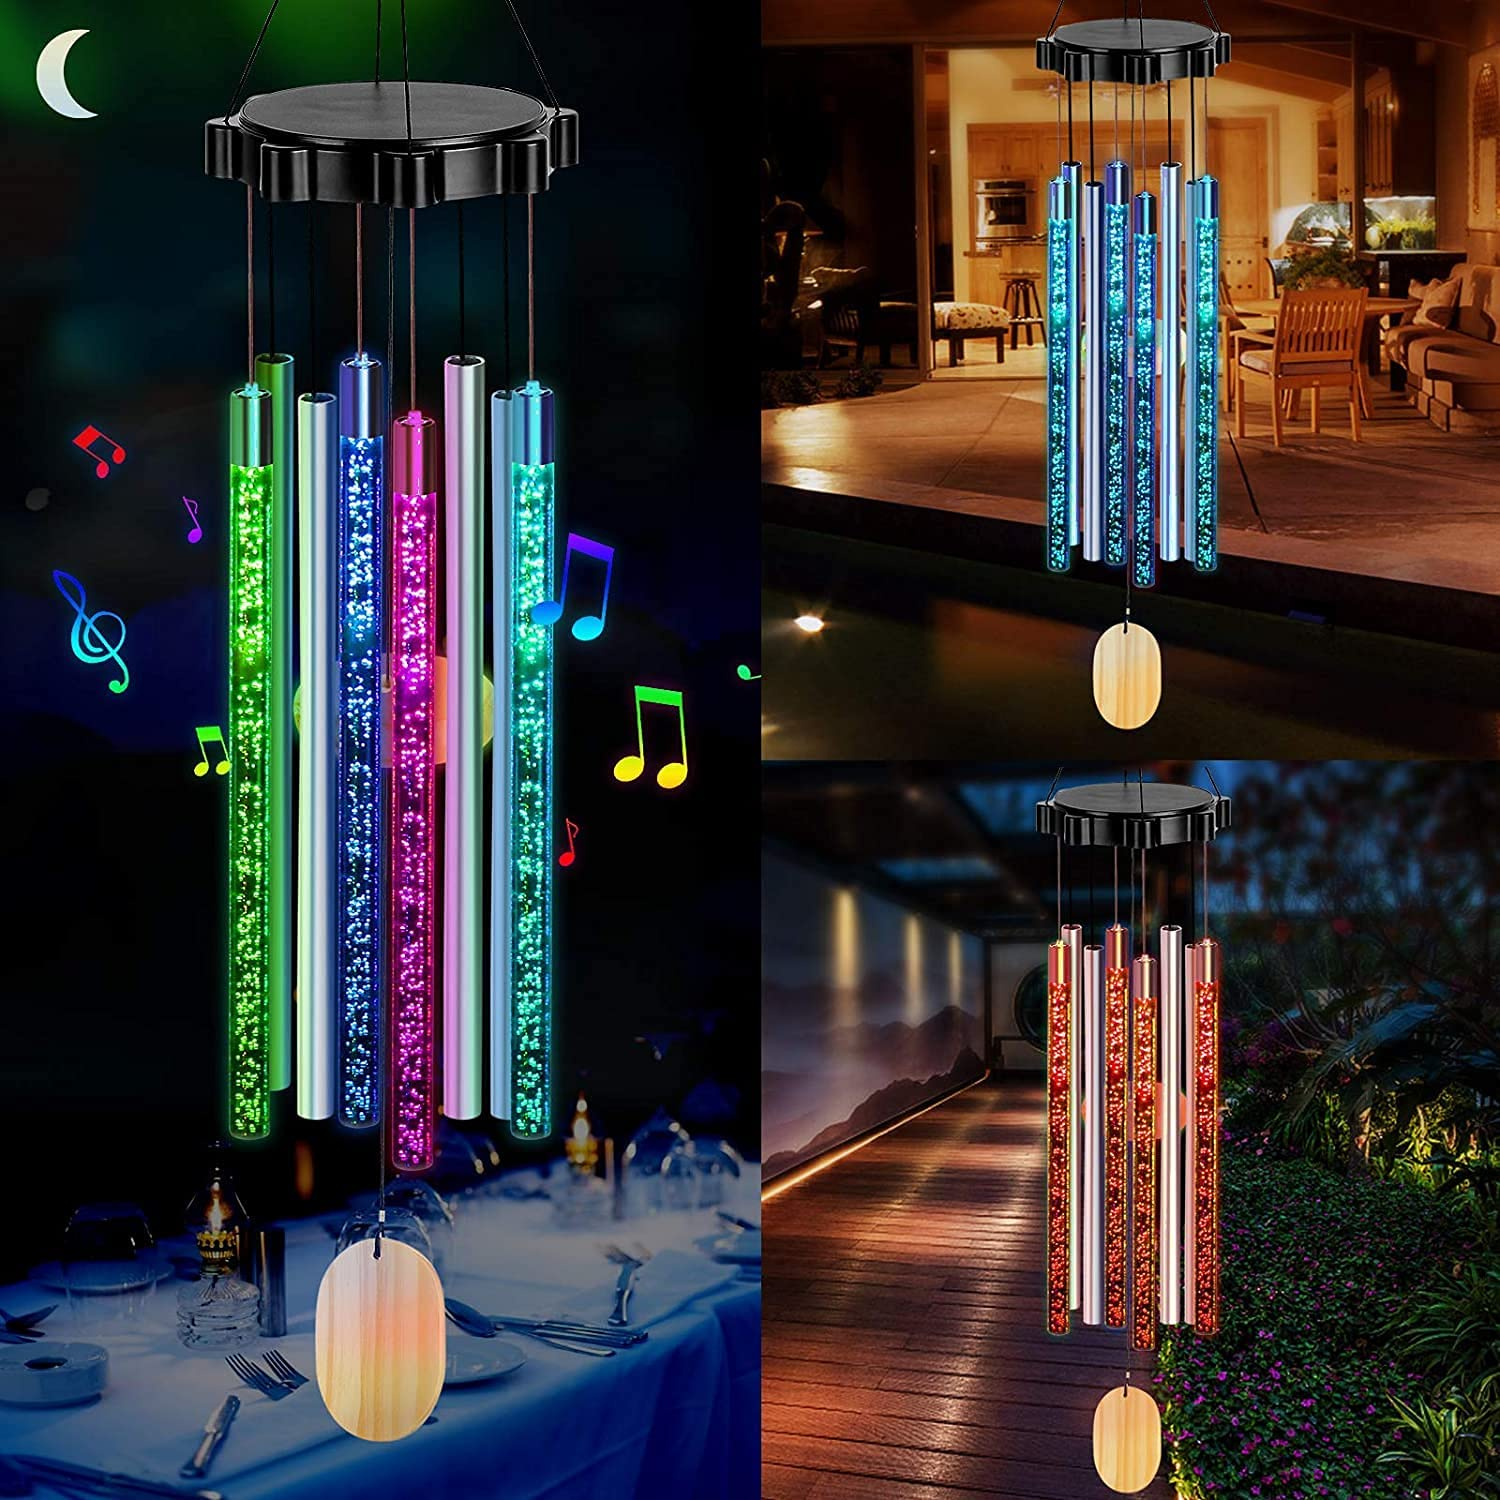 LED Solar Wind Chimes Changing Colors Large discharge sale Mom San Francisco Mall Grand Gifts Women for